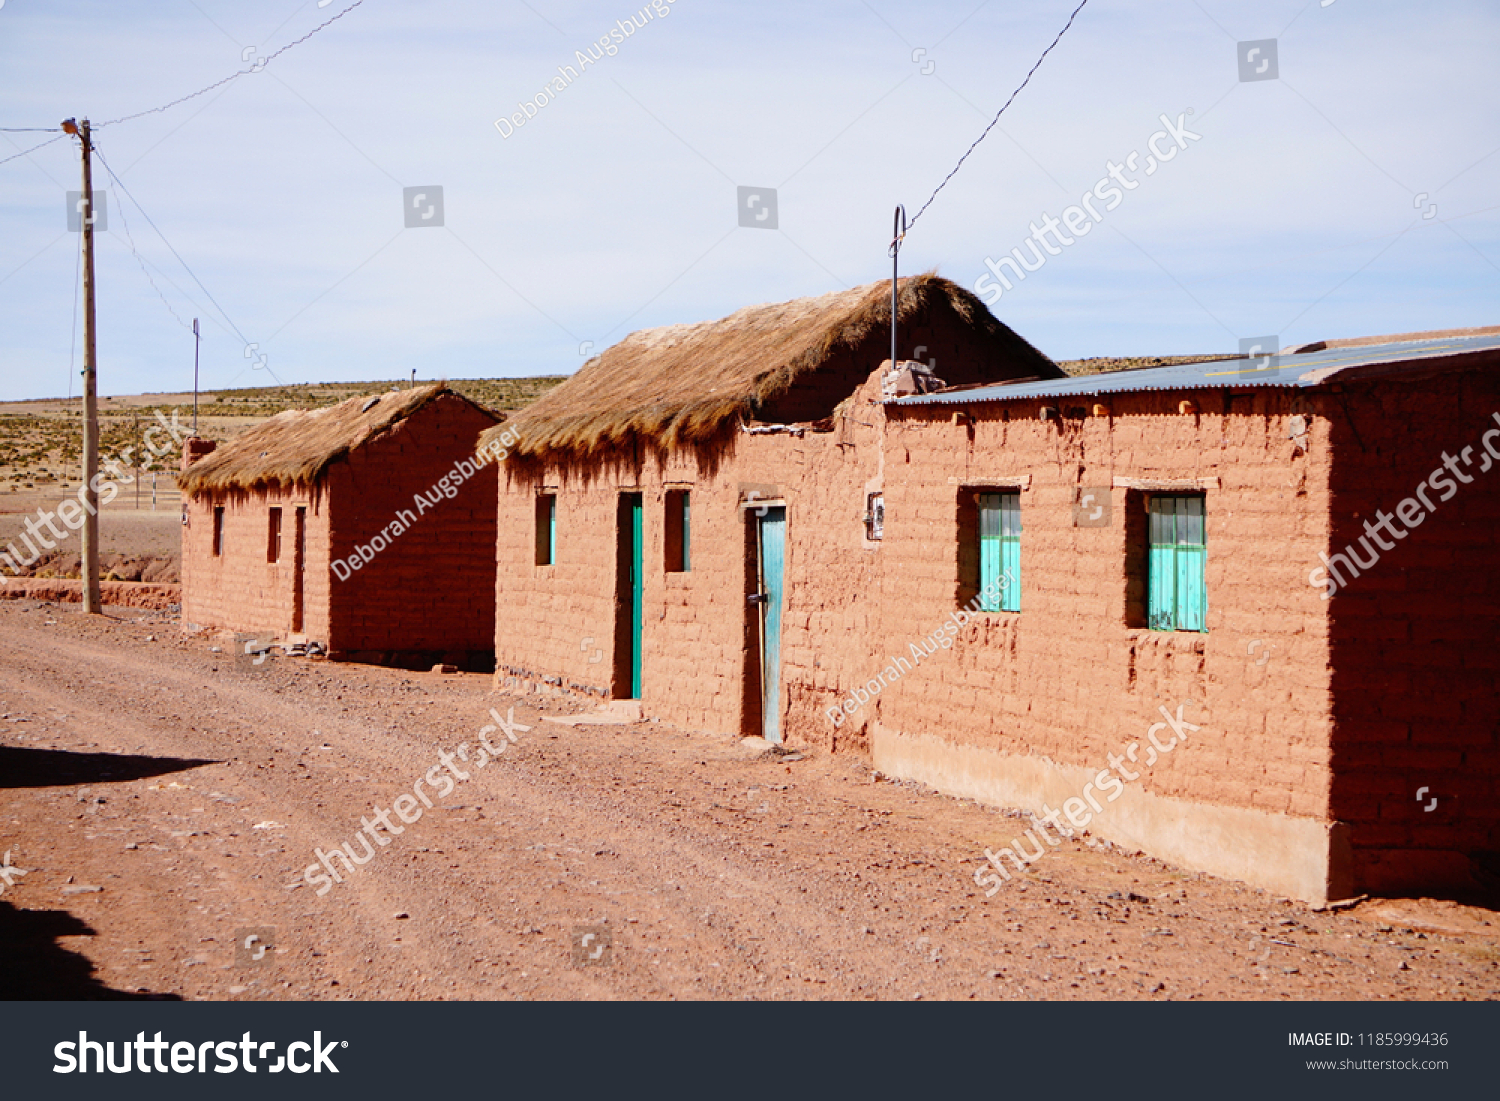 Simple Small Houses Village On Bolivian Stock Photo Edit Now